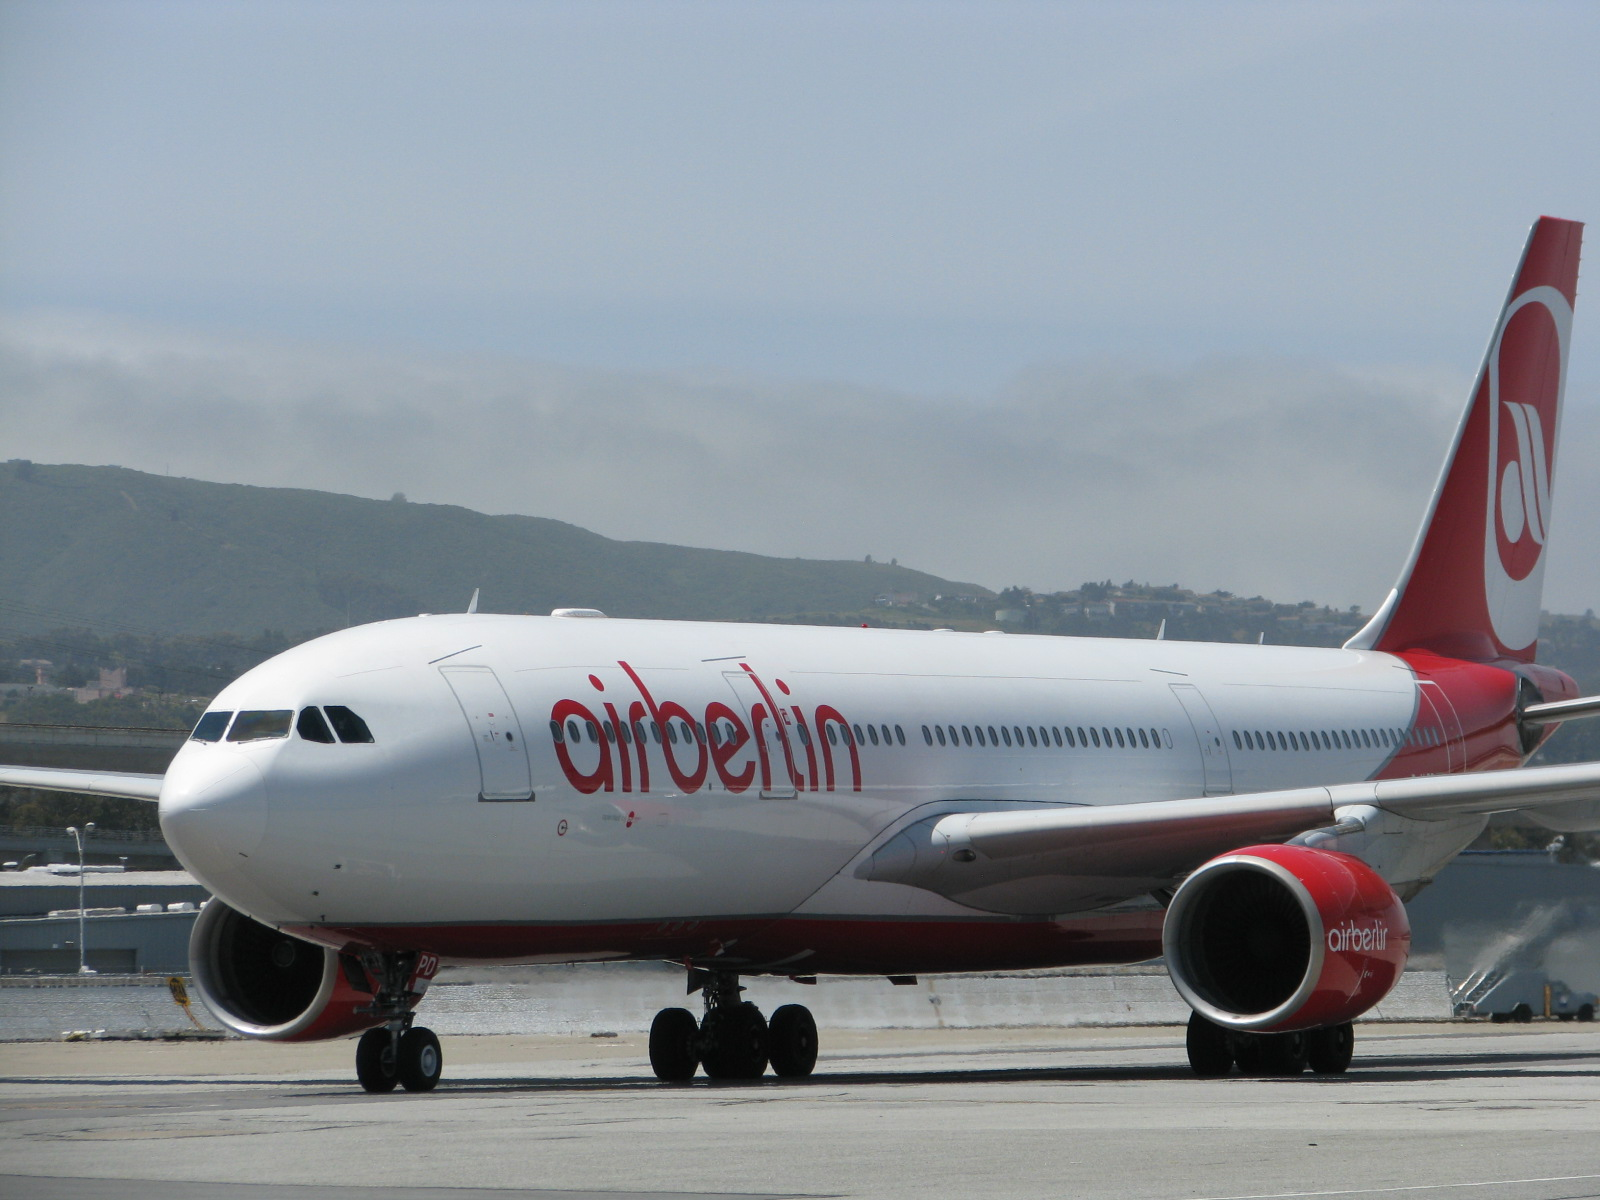 An Air Berlin A330-200 at SFO